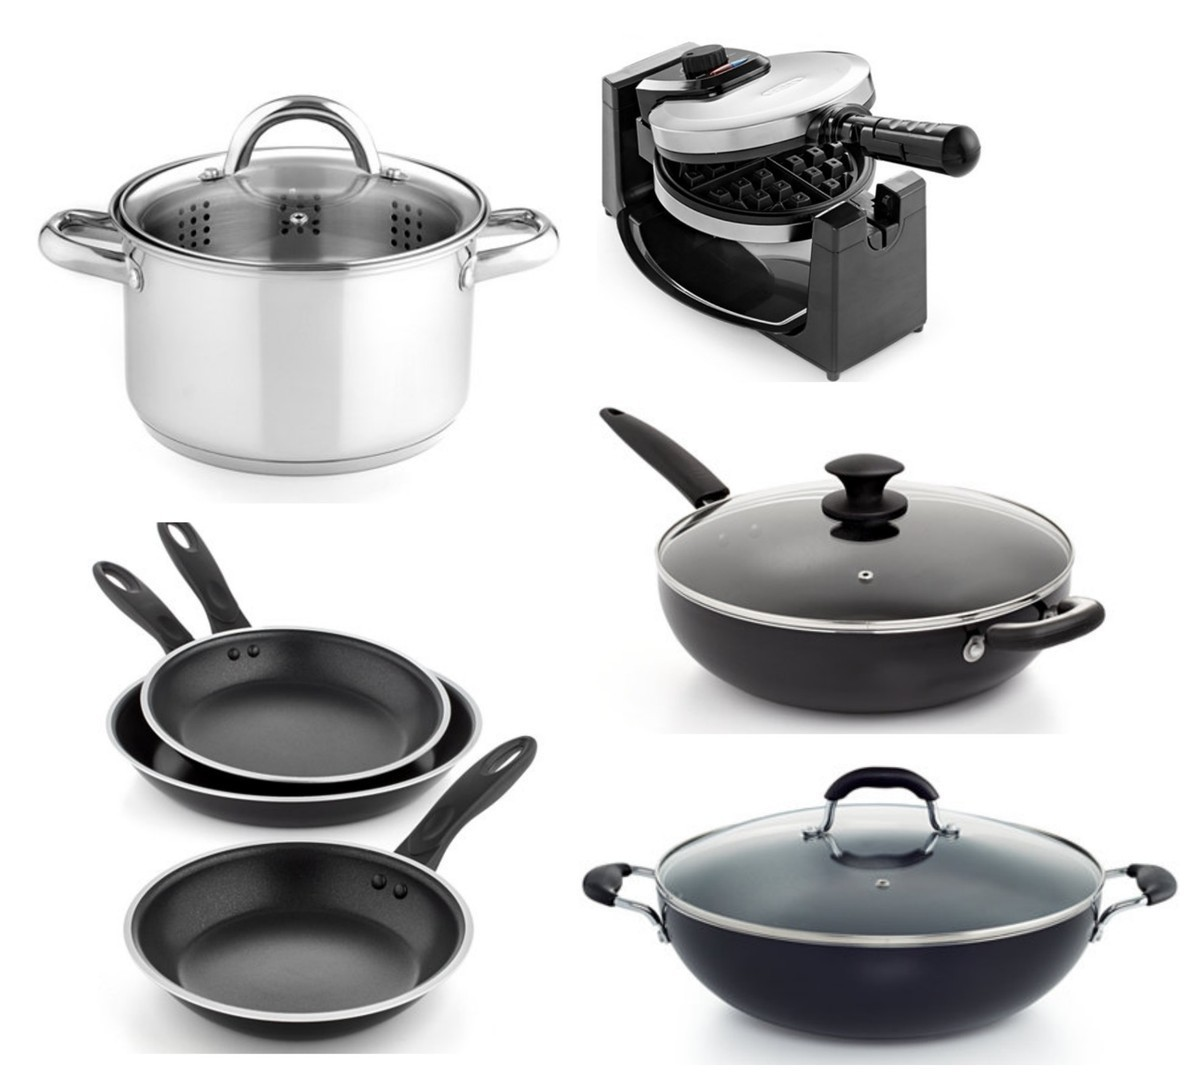 macy's: small kitchen appliances $9.99 after rebate